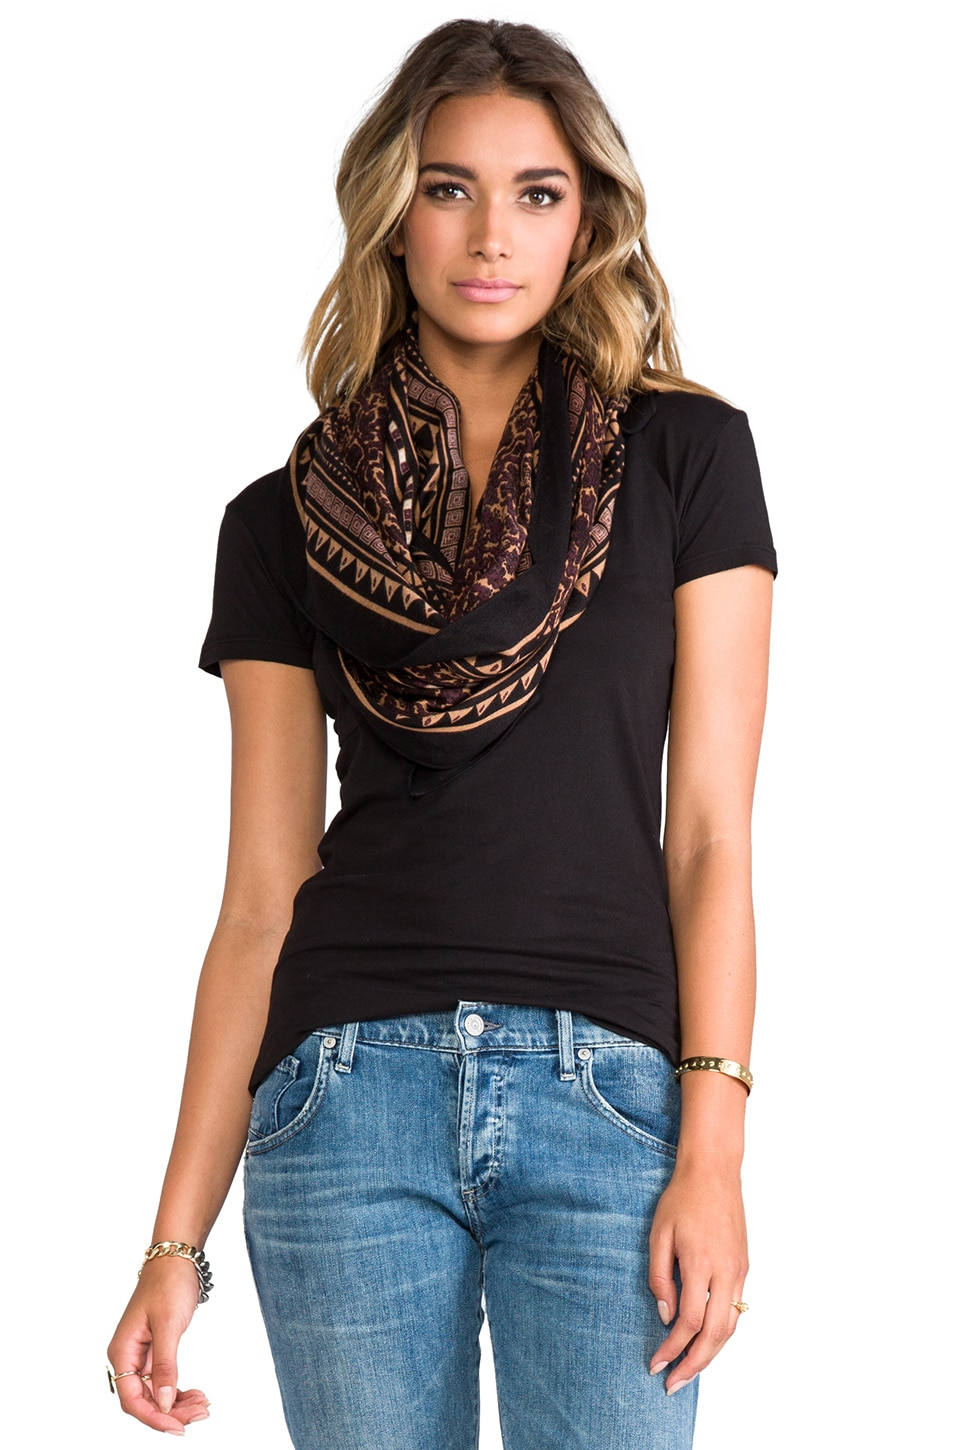 Theodora & Callum Flagstaff Wearable Art Scarf in Black Multi